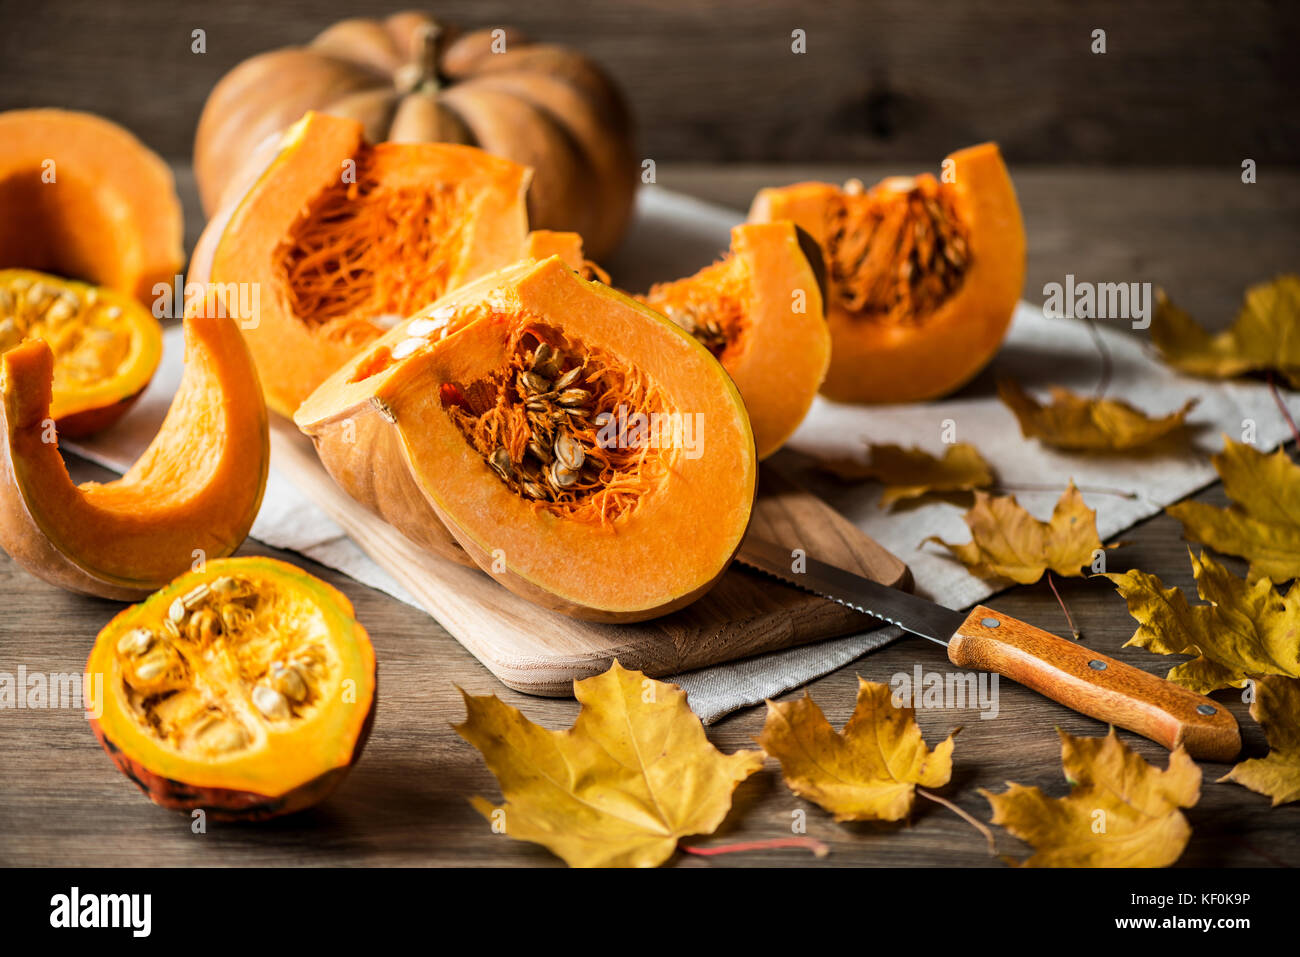 Sliced pumpkin with seeds on a wooden background. Close-up - Stock Image